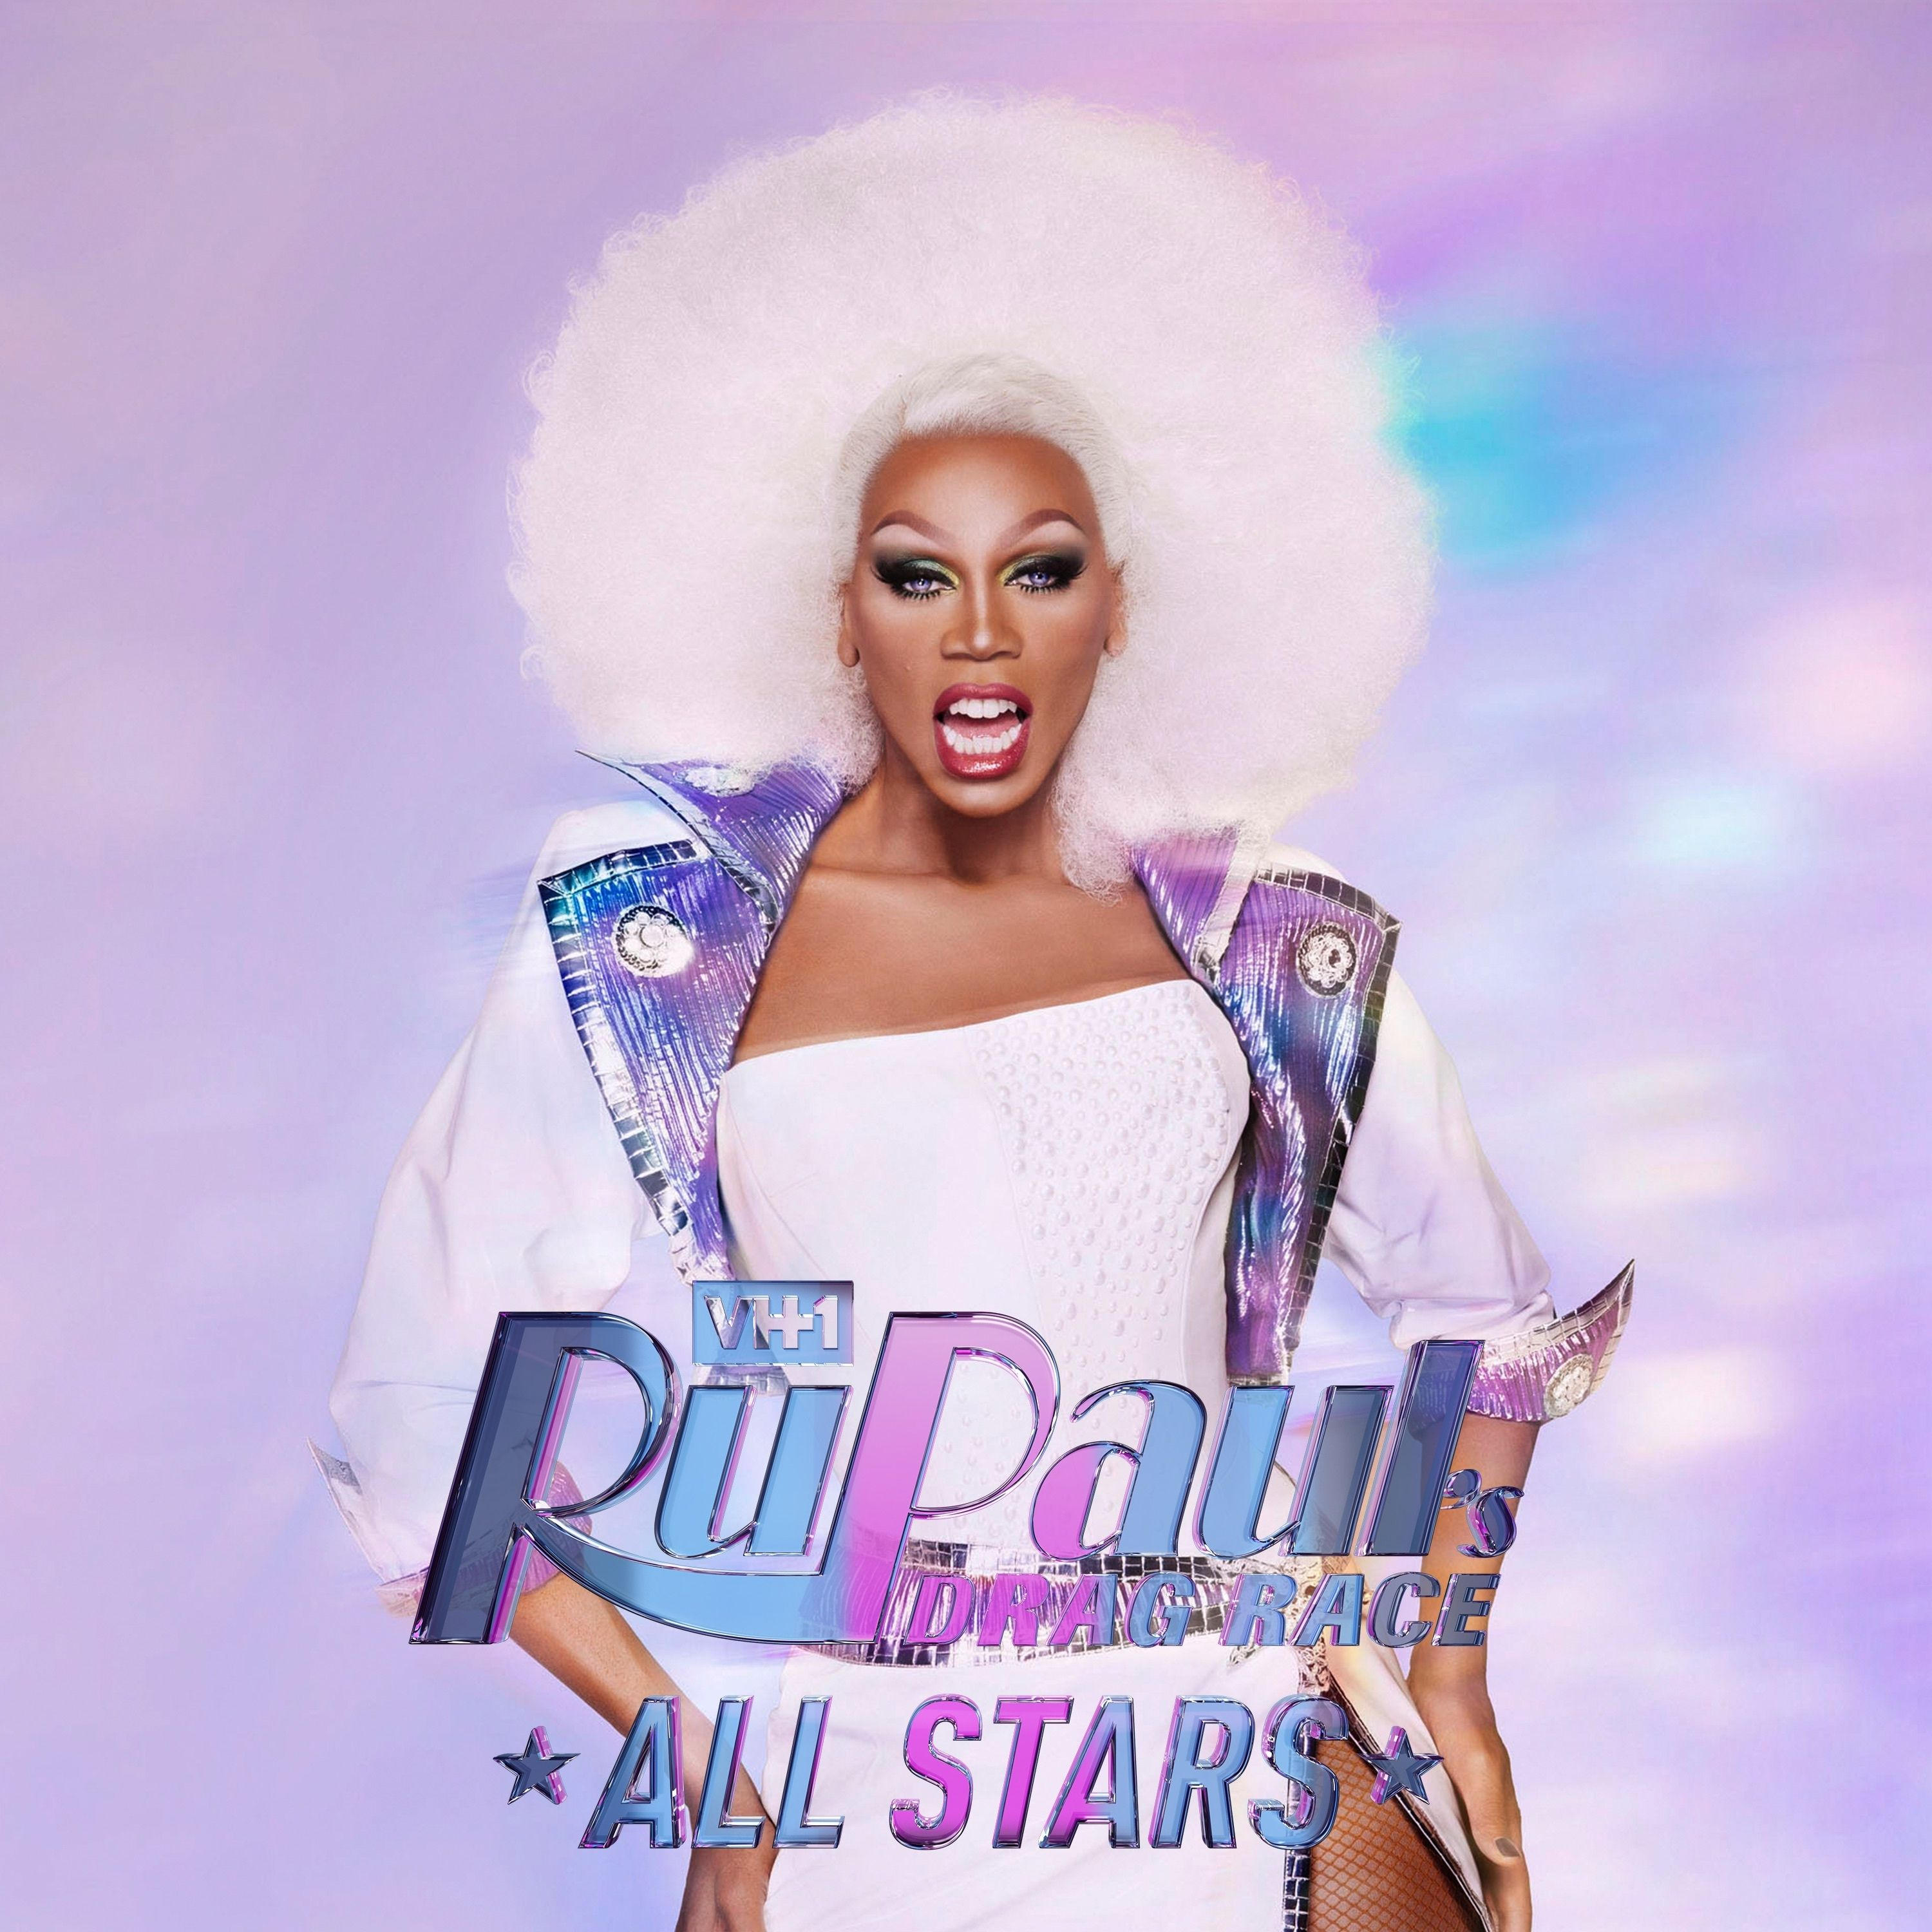 RuPaul's Drag Race All Stars (Season 4)